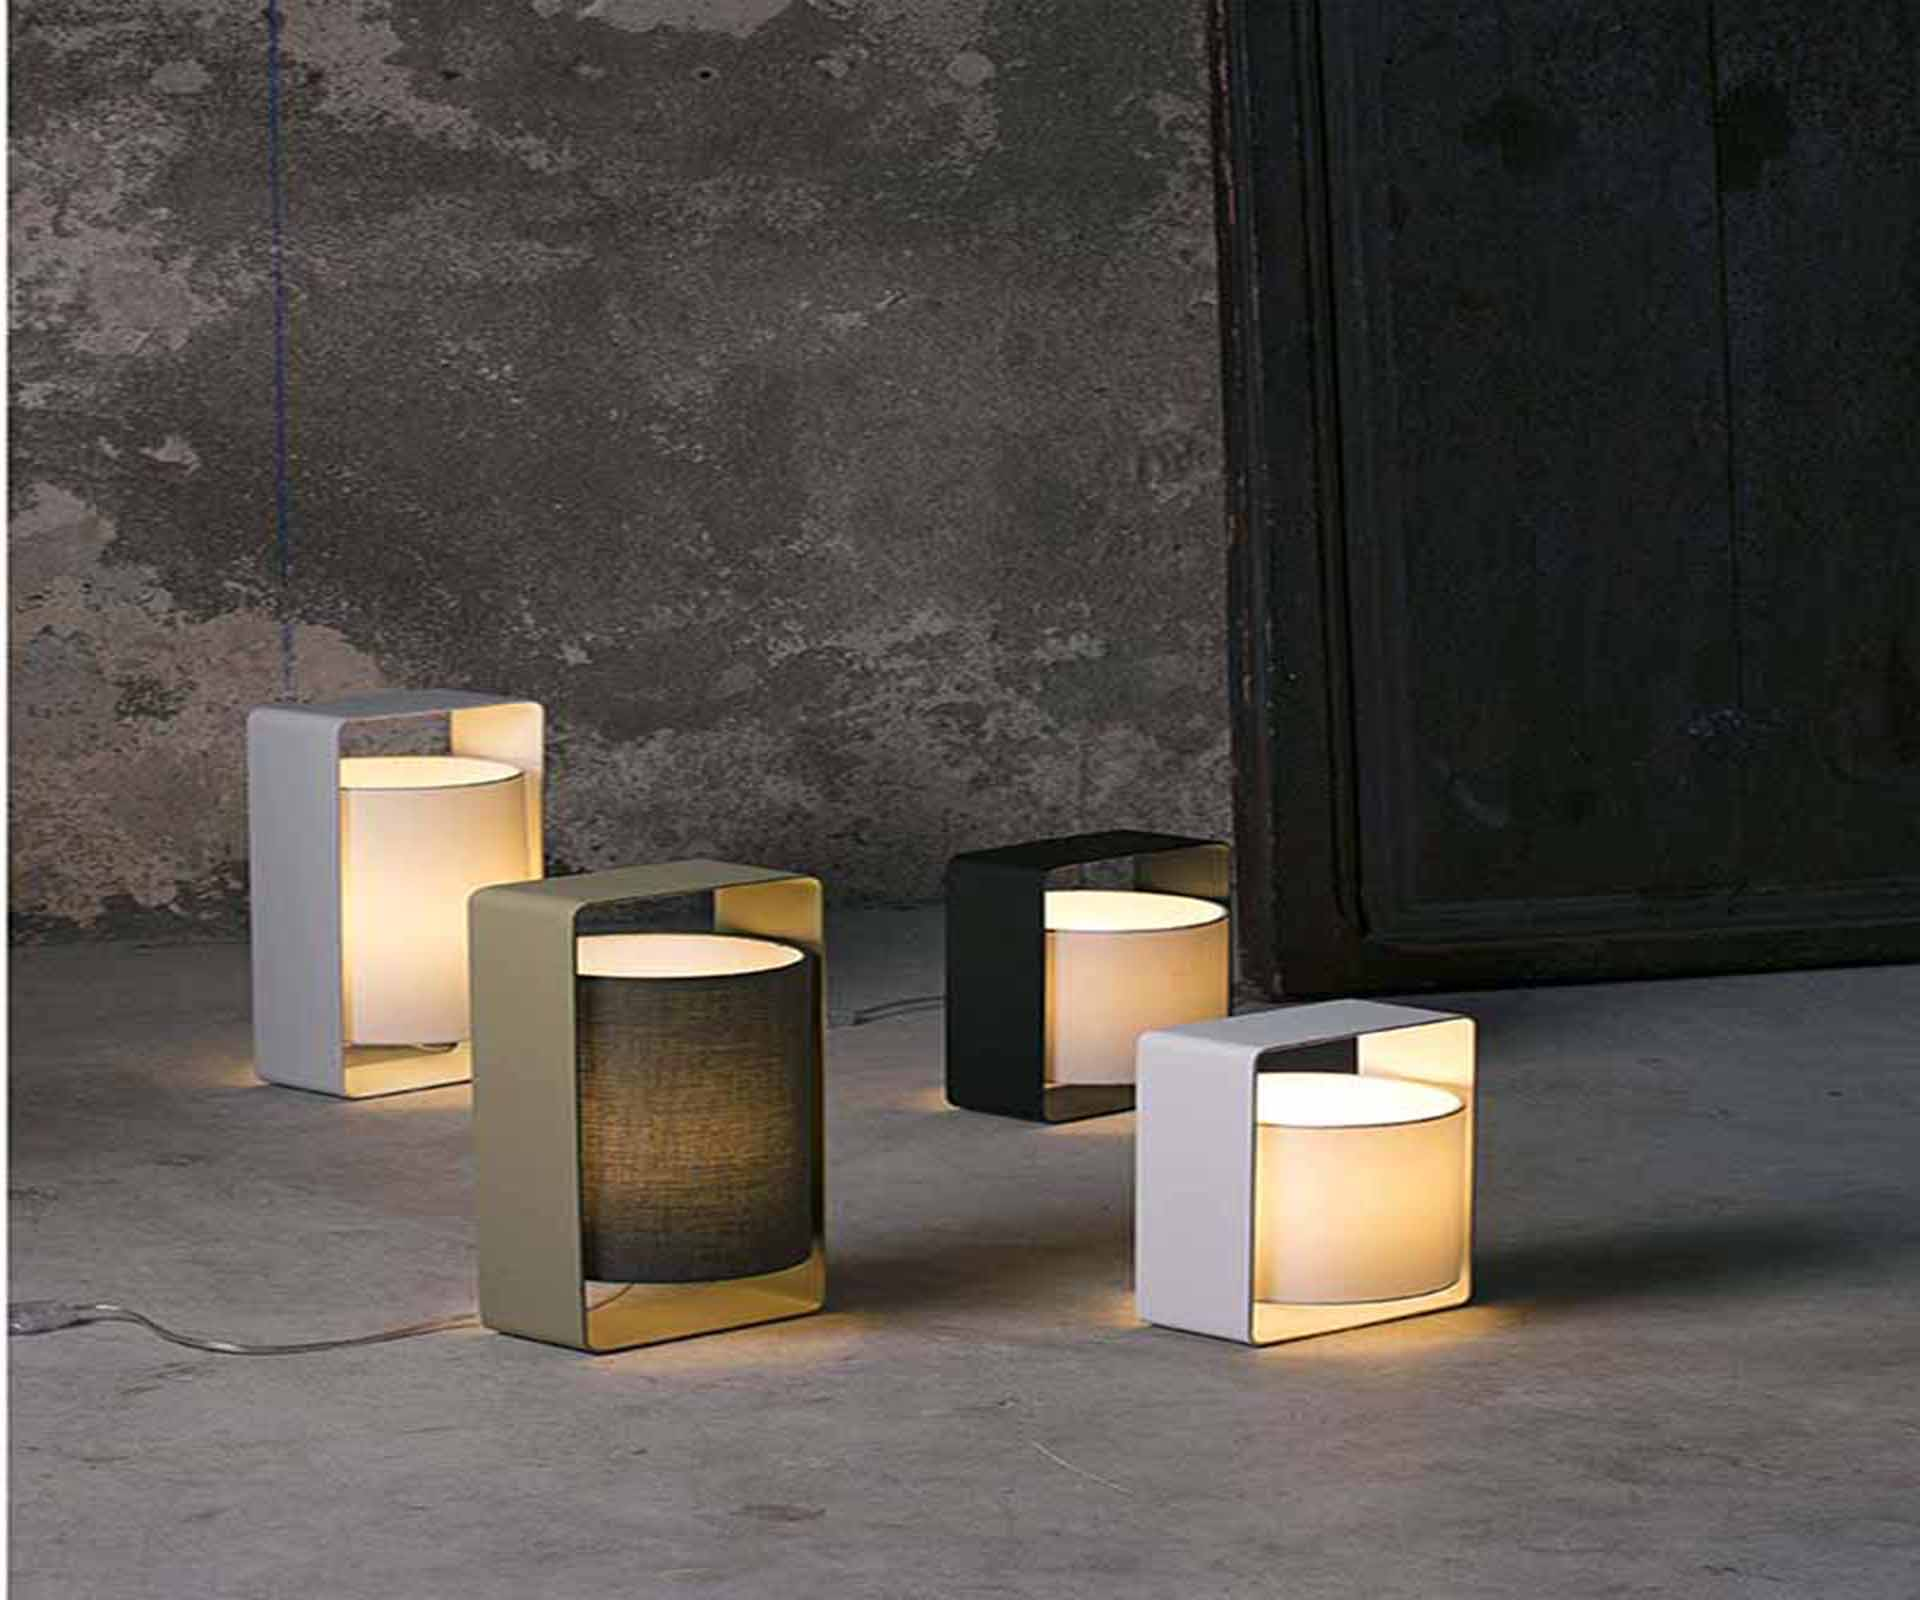 More information of LULA table lamp